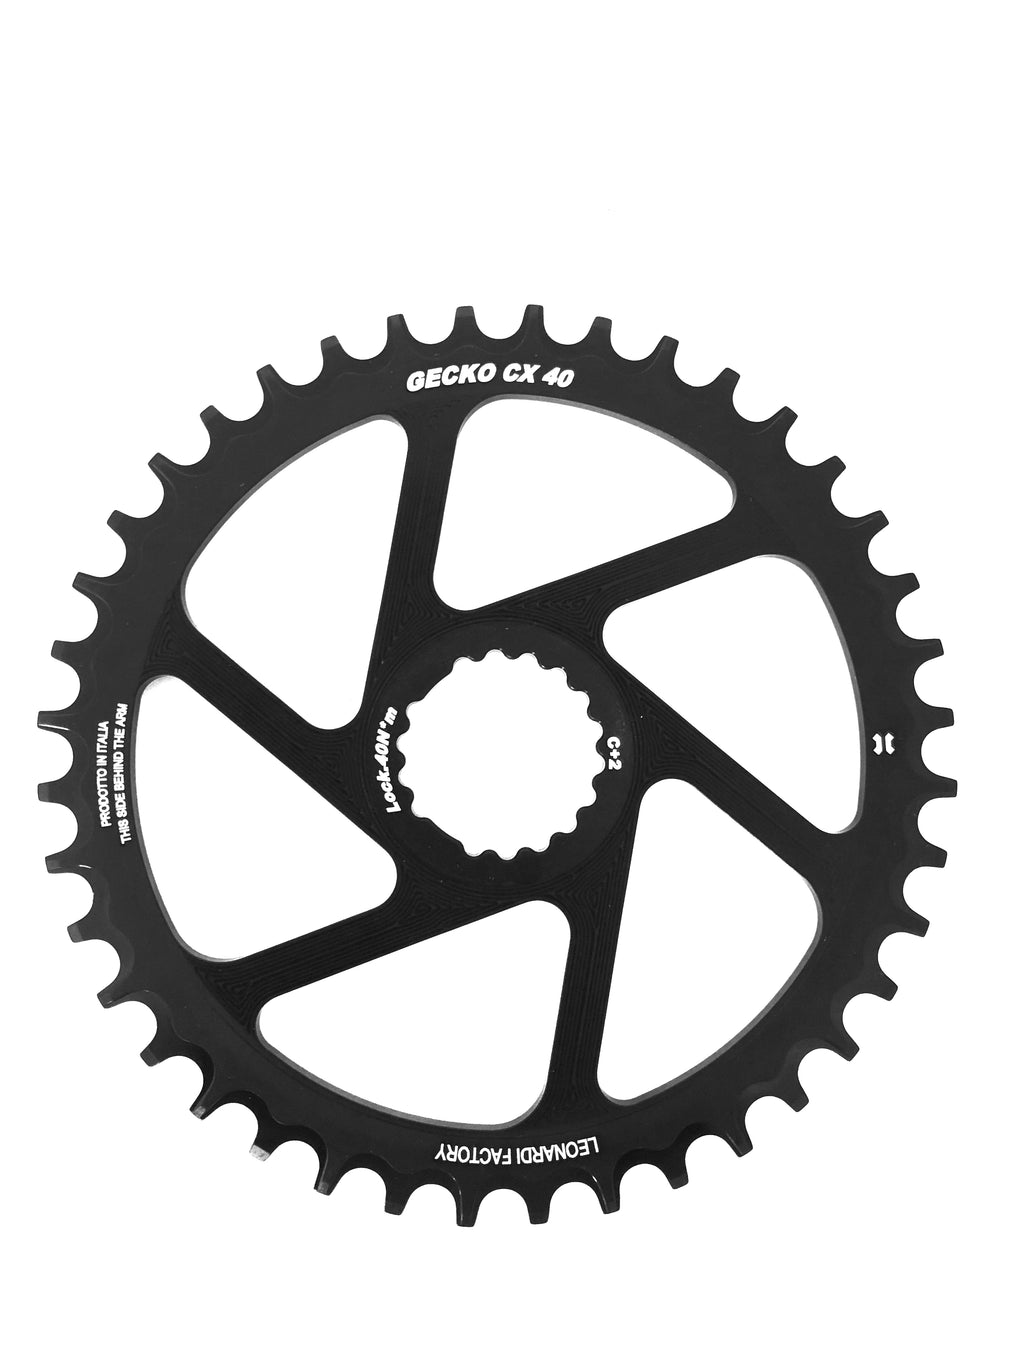 GECKO CX CANNONDALE® CHAINRING